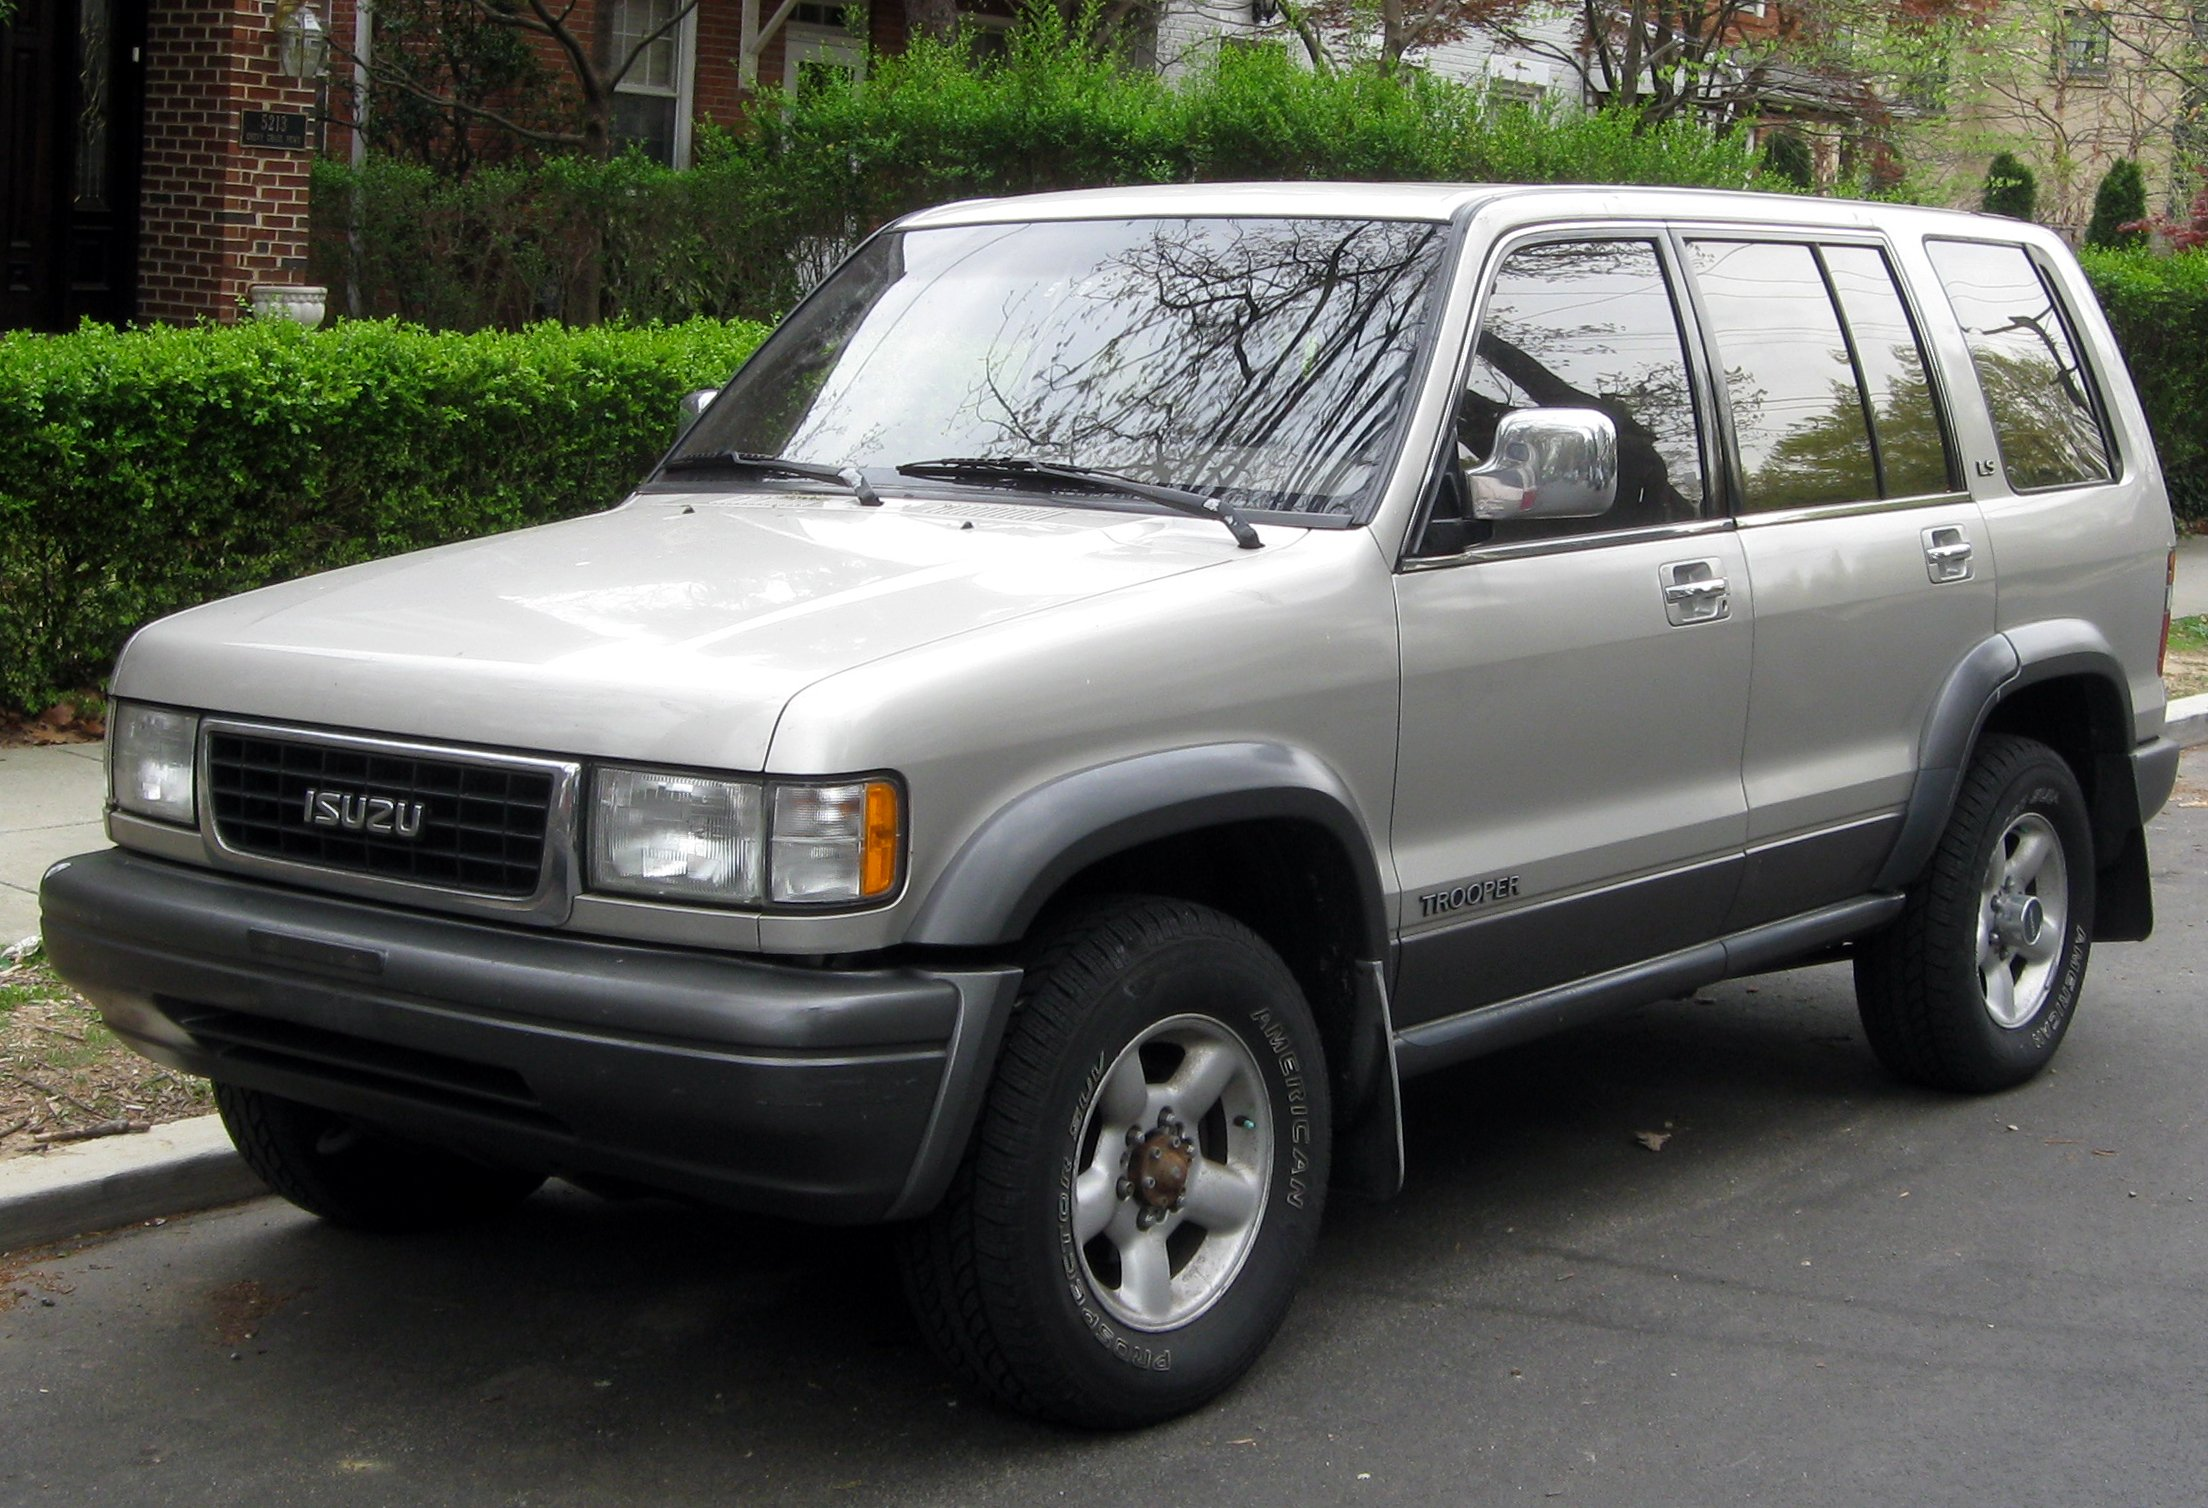 1997 Isuzu Trooper Ls Pictures Information And Specs Auto 1994 Mercedes C280 Engine Diagram Photo Gallery